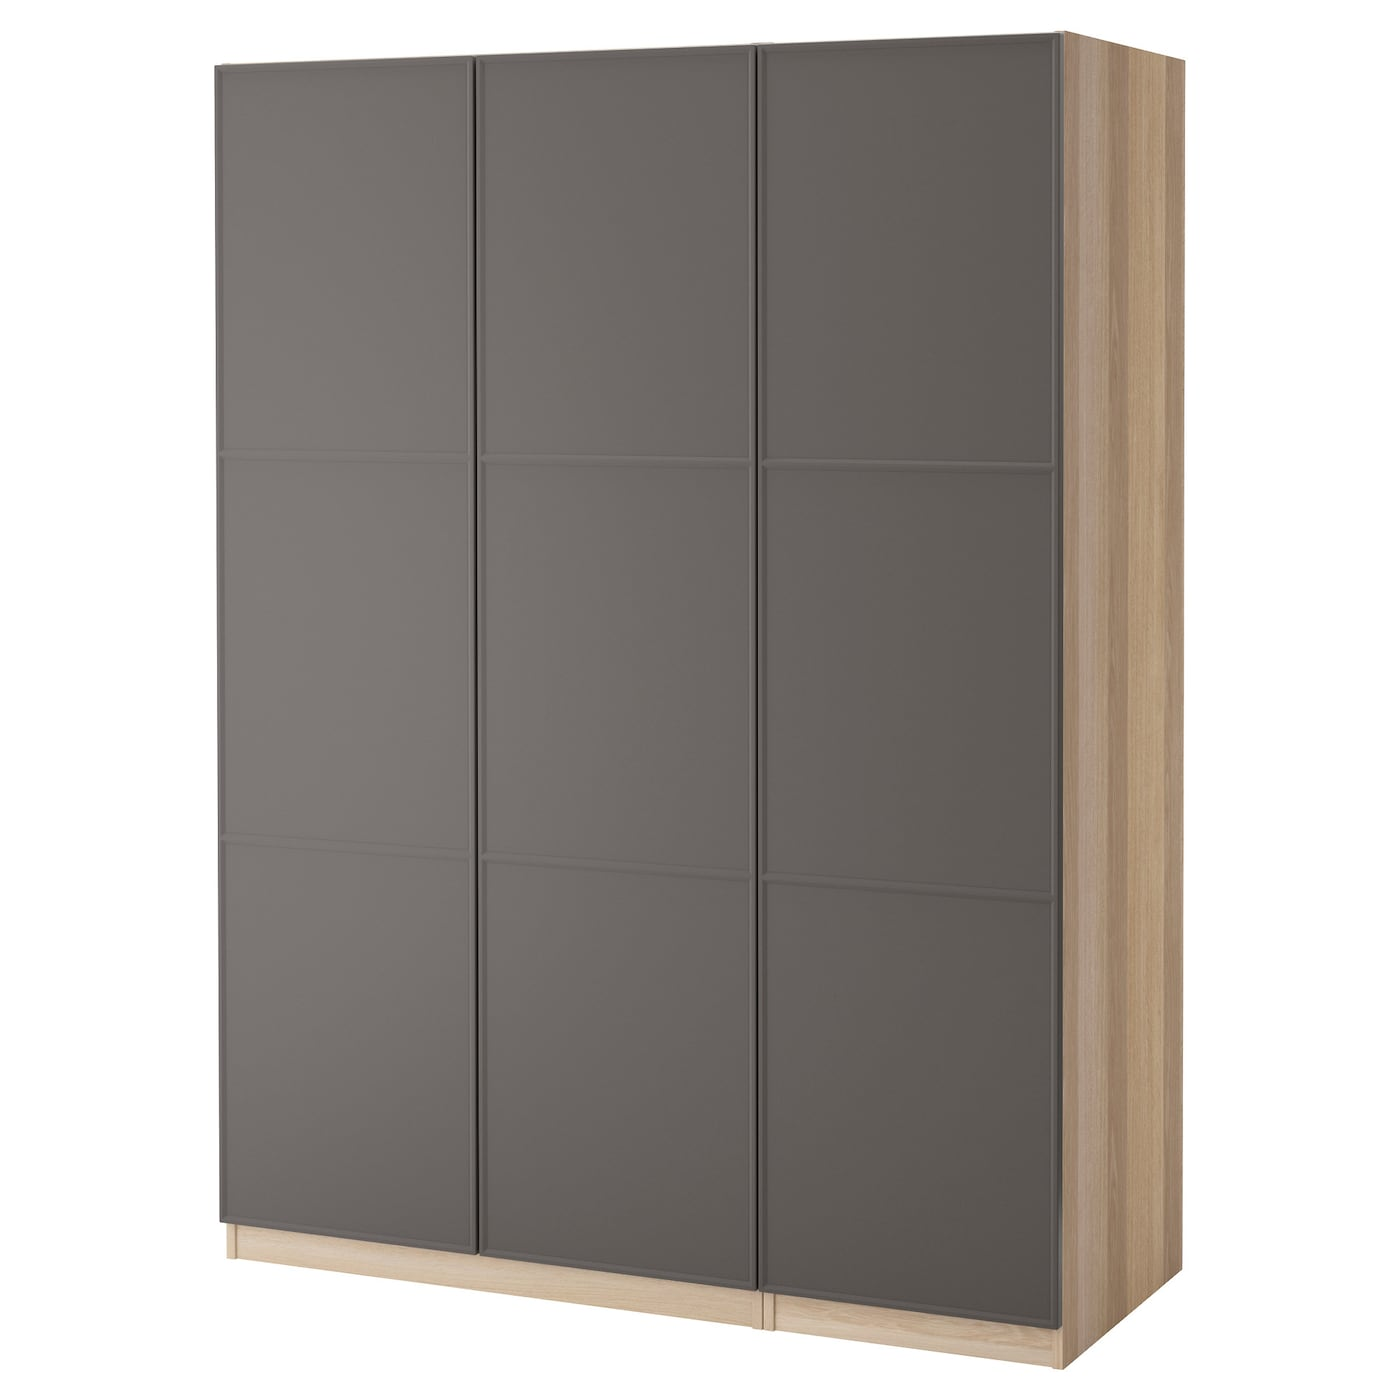 pax kledingkast wit gelazuurd eiken mer ker donkergrijs 150x60x201 cm ikea. Black Bedroom Furniture Sets. Home Design Ideas